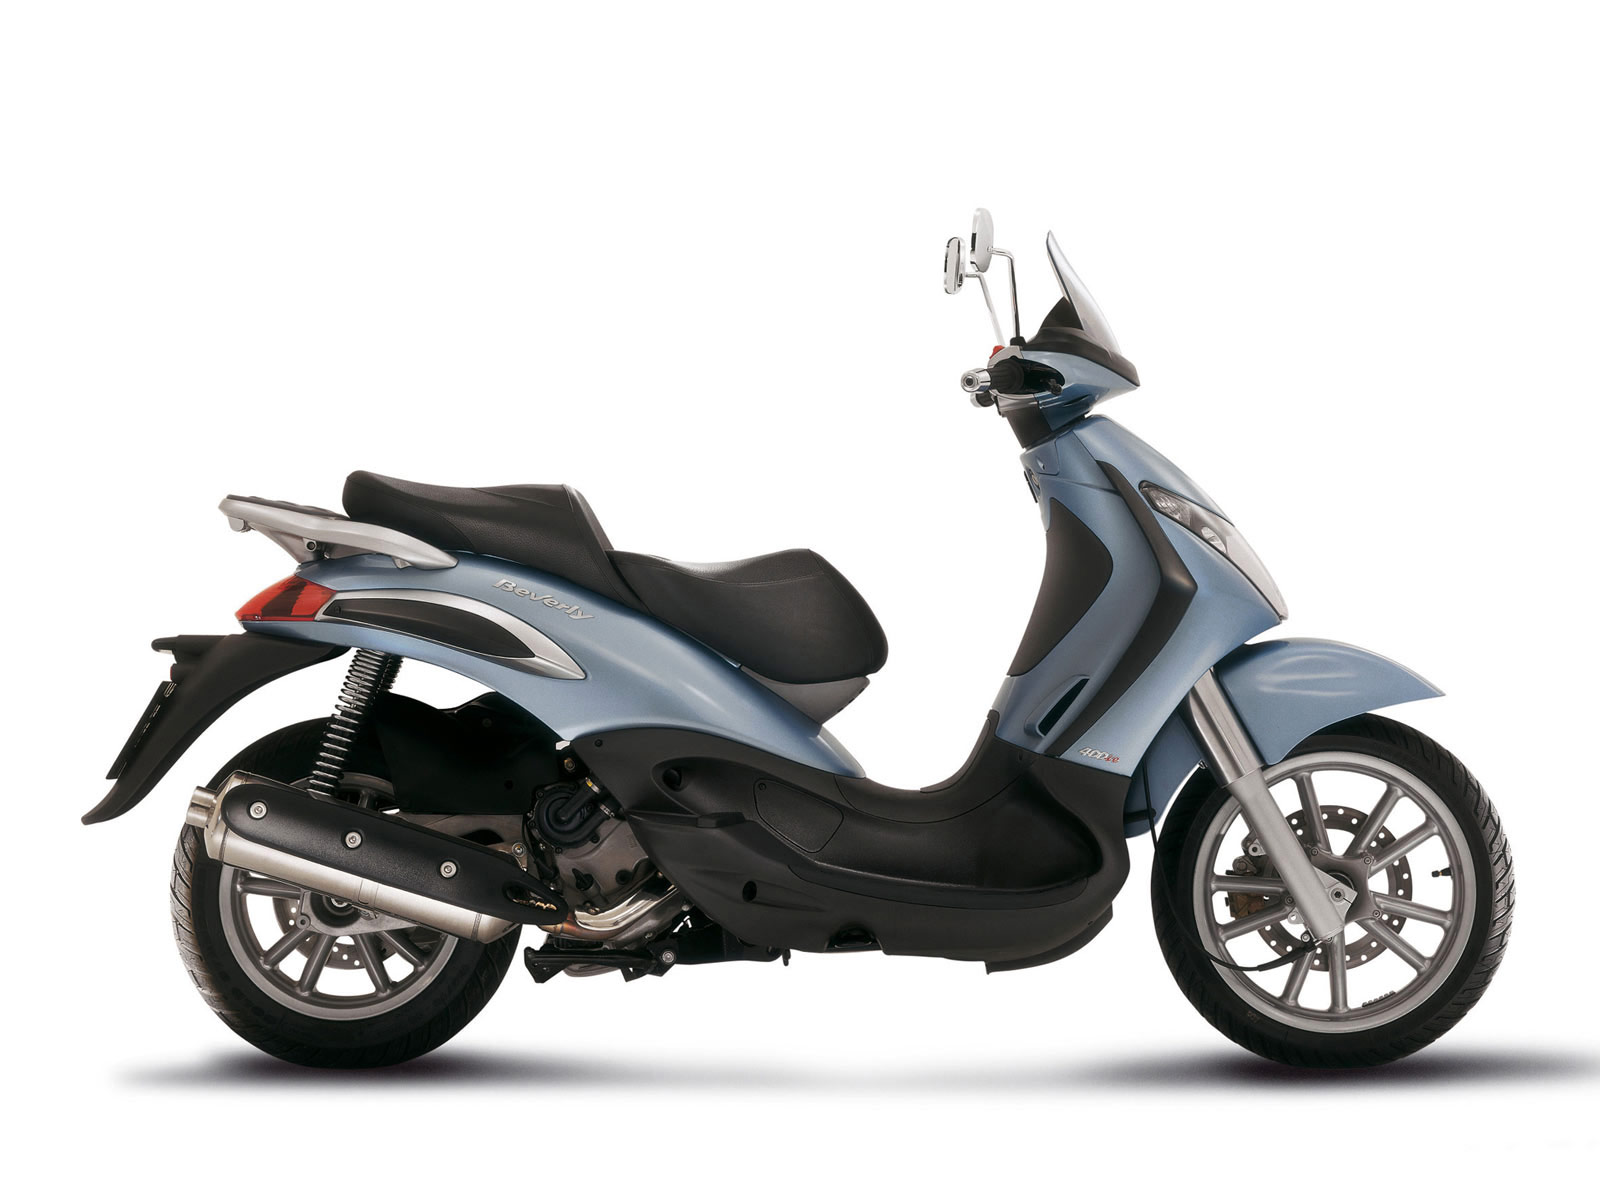 2007 piaggio beverly 400ie scooter pictures accident lawyers info. Black Bedroom Furniture Sets. Home Design Ideas